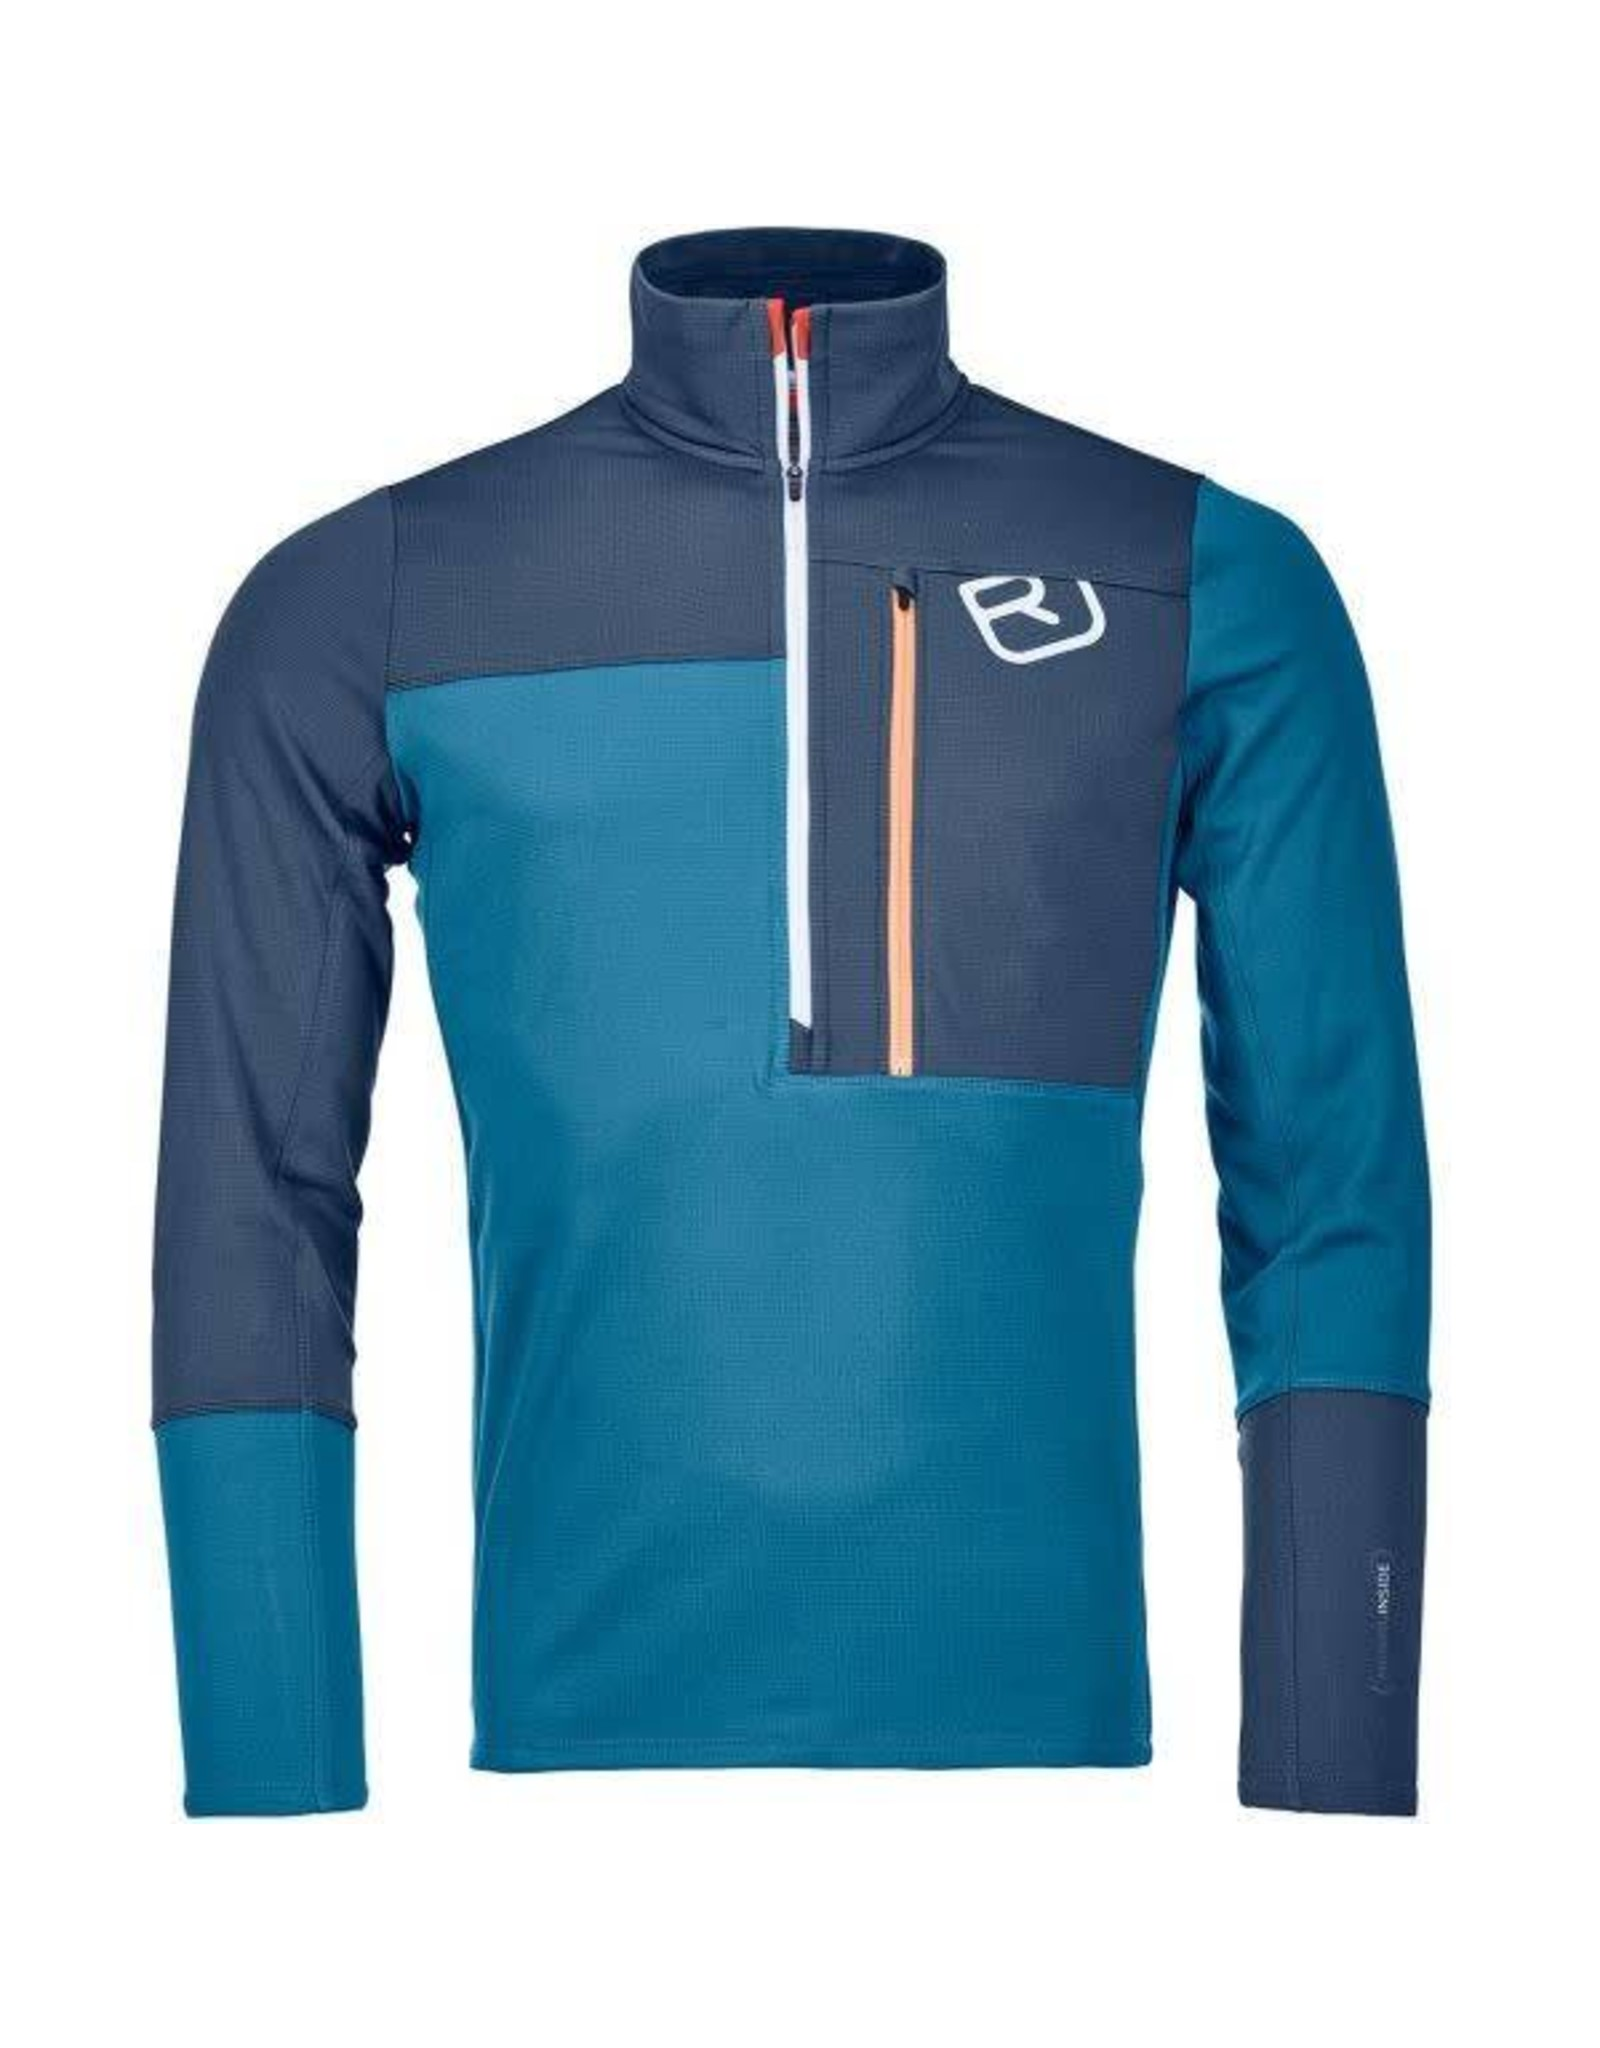 Ortovox Ortovox Merino Fleece Light Zip Neck